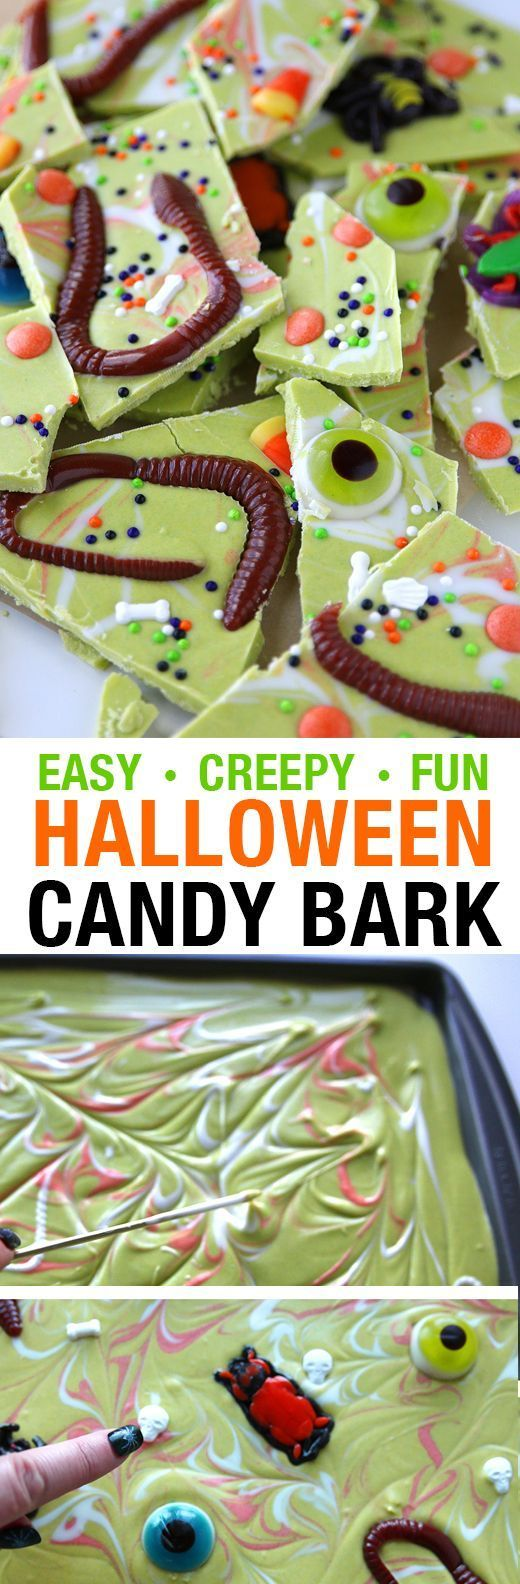 1505 best Holiday | Halloween images on Pinterest